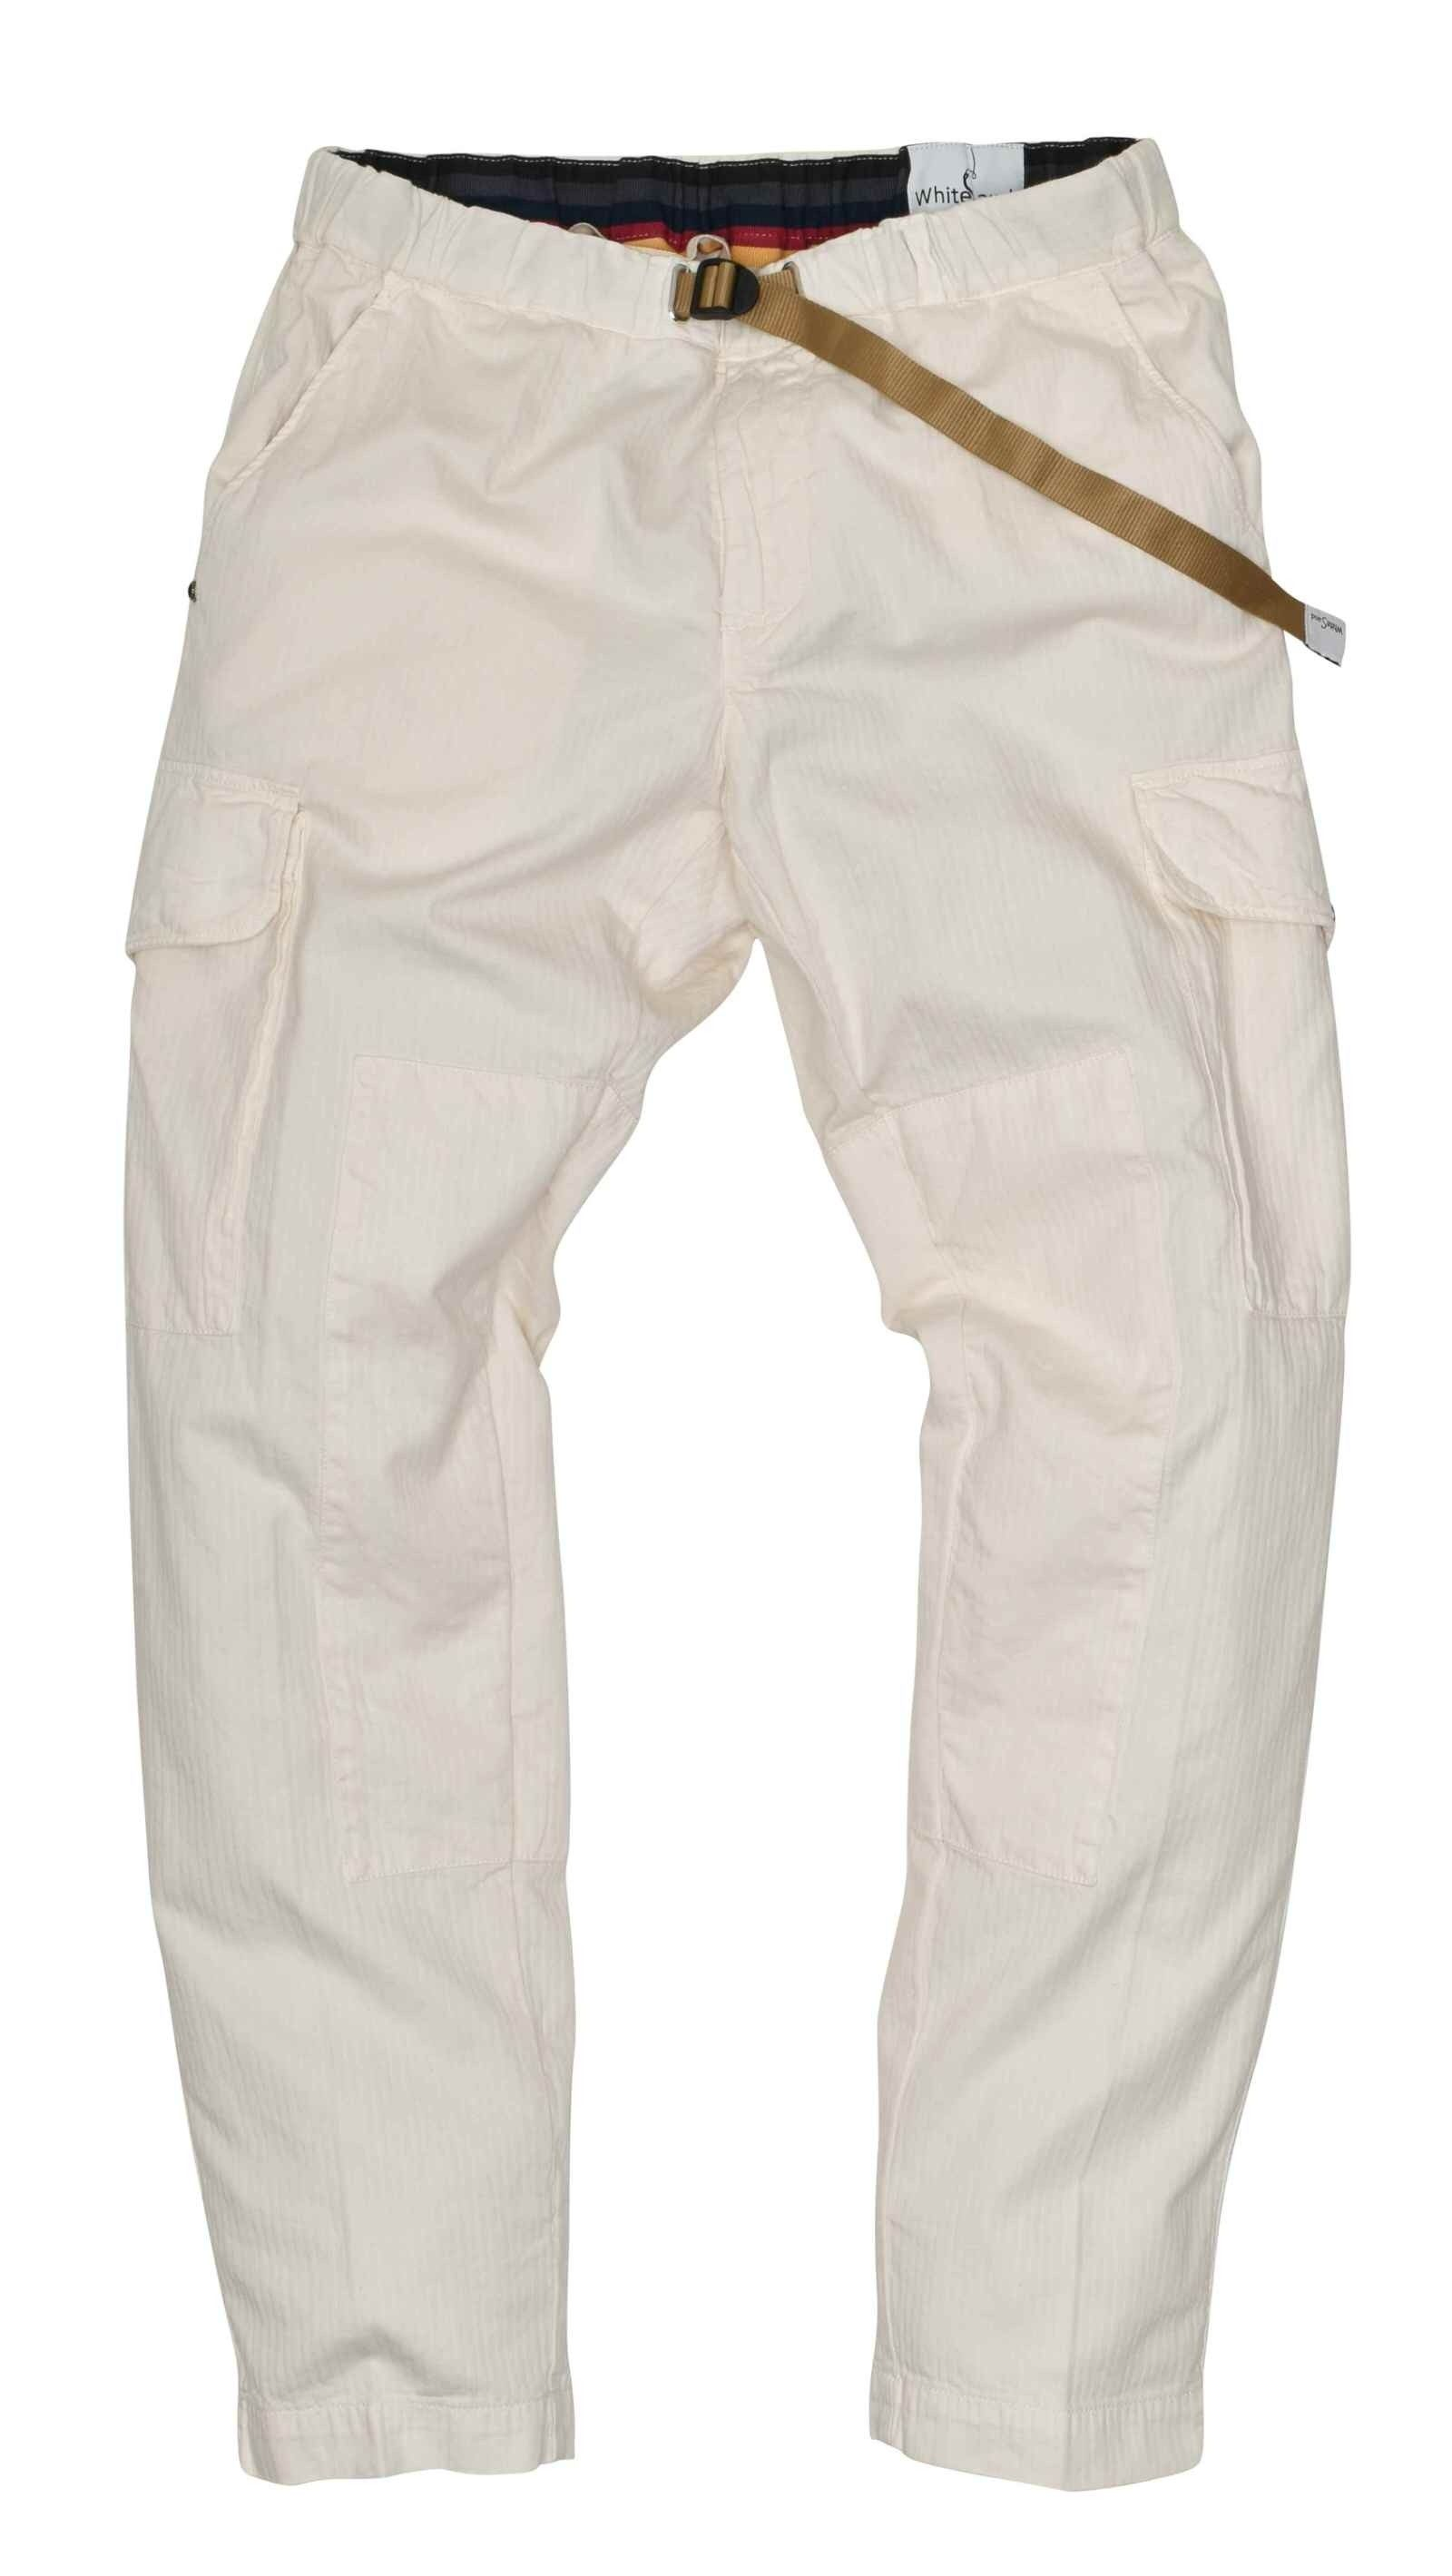 WHITE SAND - Herren Hose - Long Trousers Bruce - Bianco